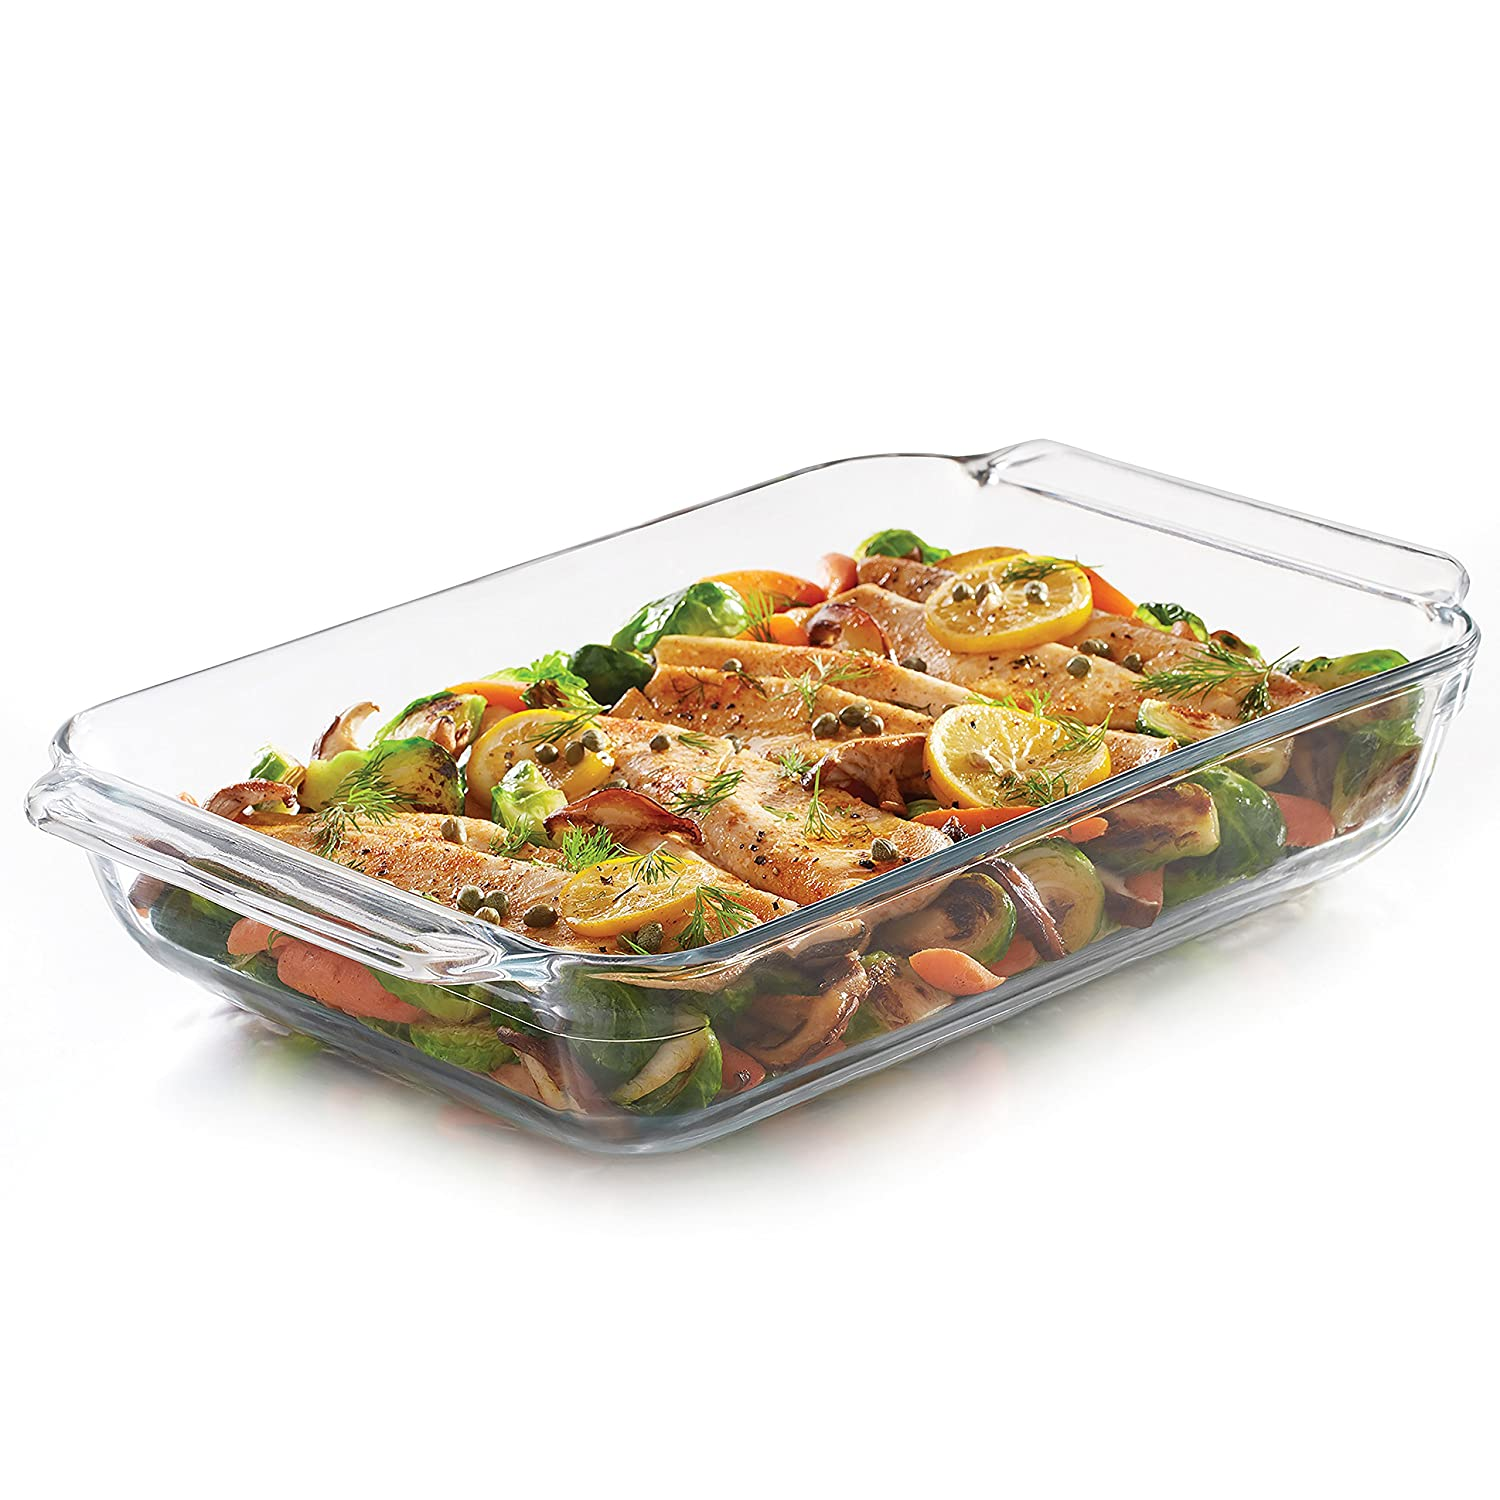 Libbey Baker's Premium Glass Casserole Baking Dish, 9-inch by 13-inch